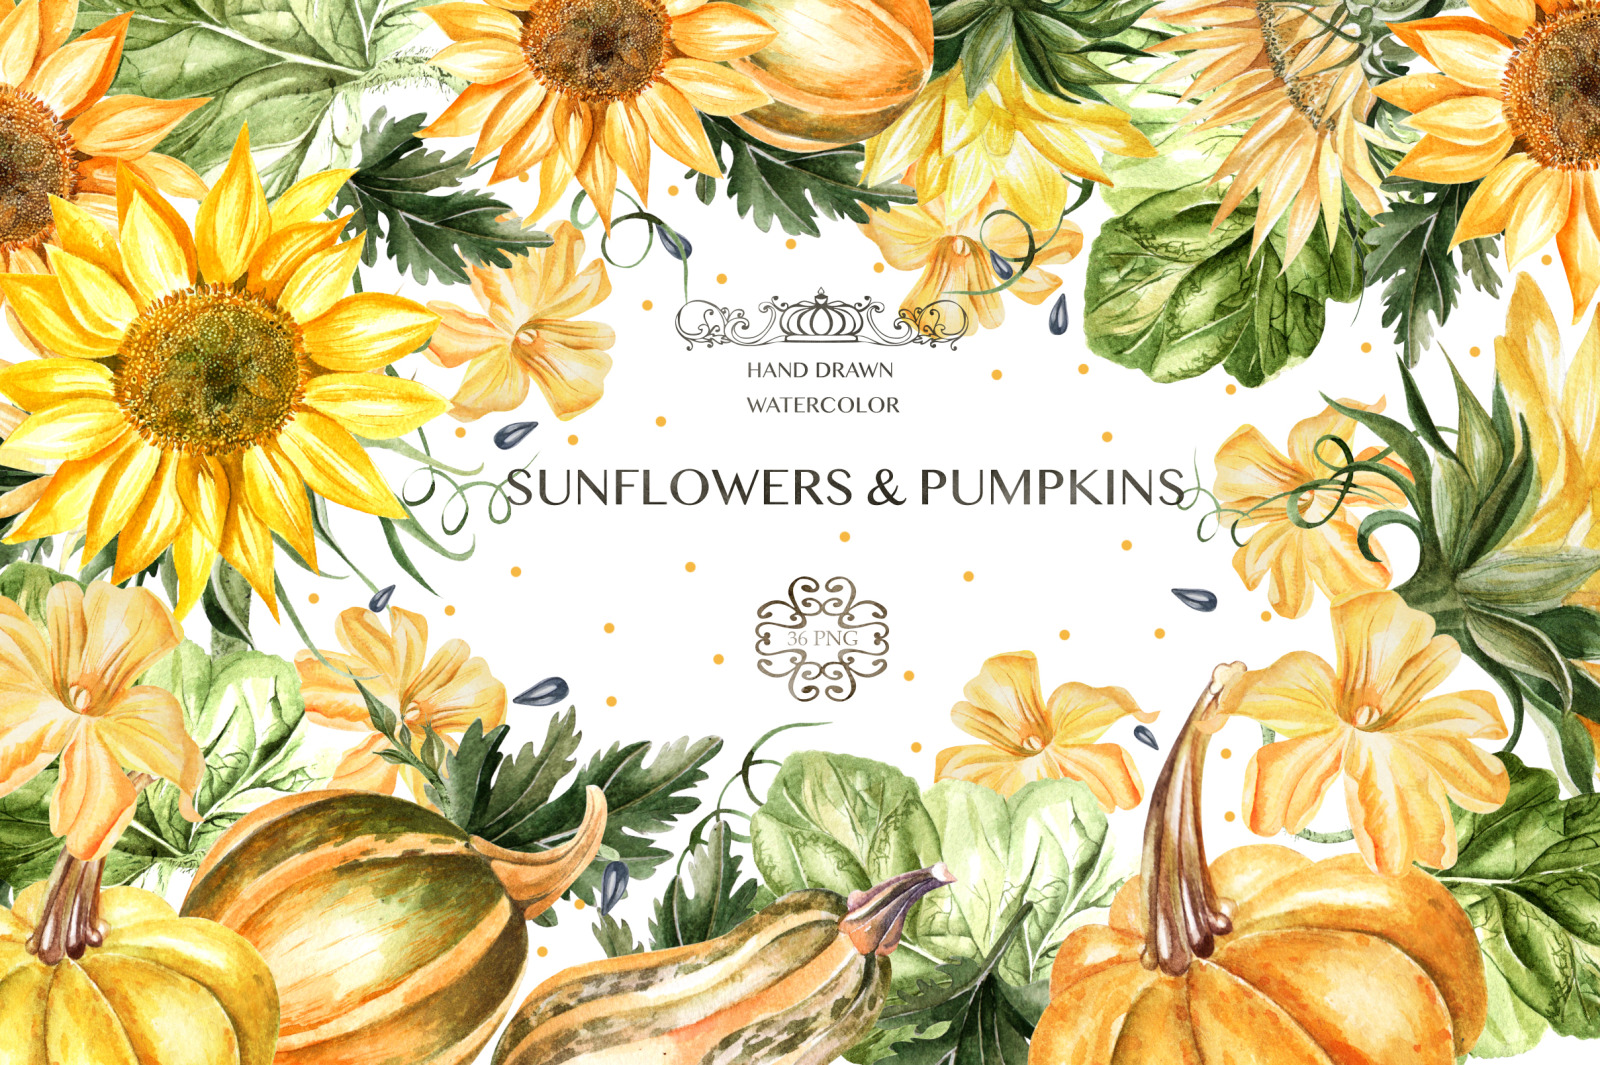 Watercolor Sunflower & Pumpkins